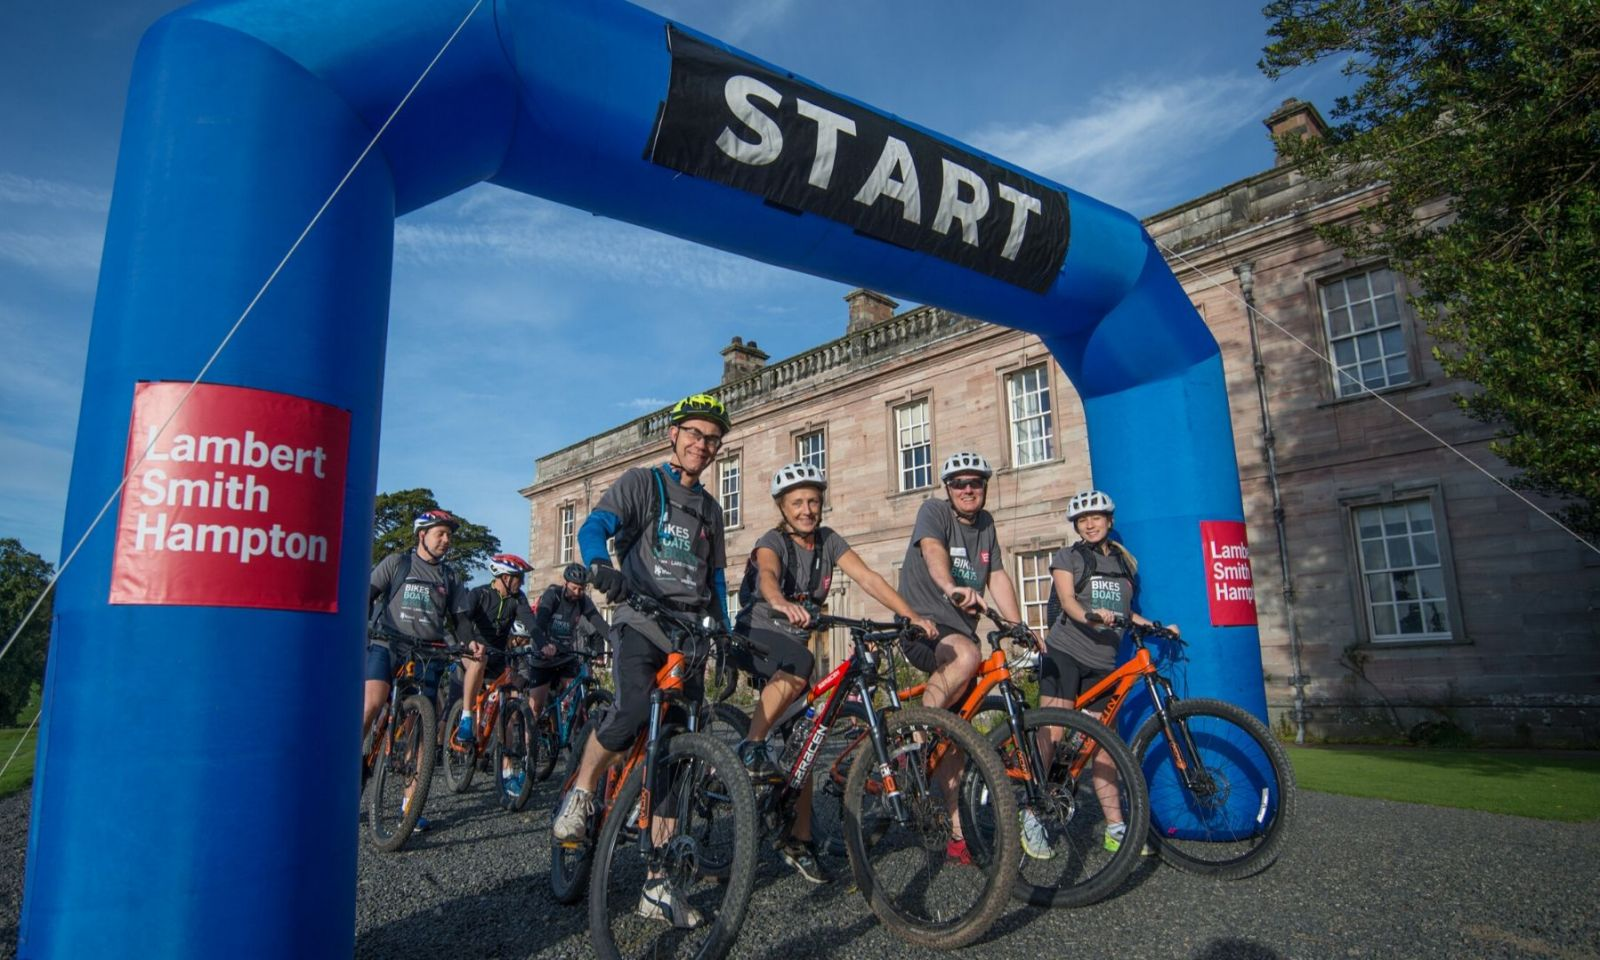 Cyclists grouped together under the start arch before a challenge event.